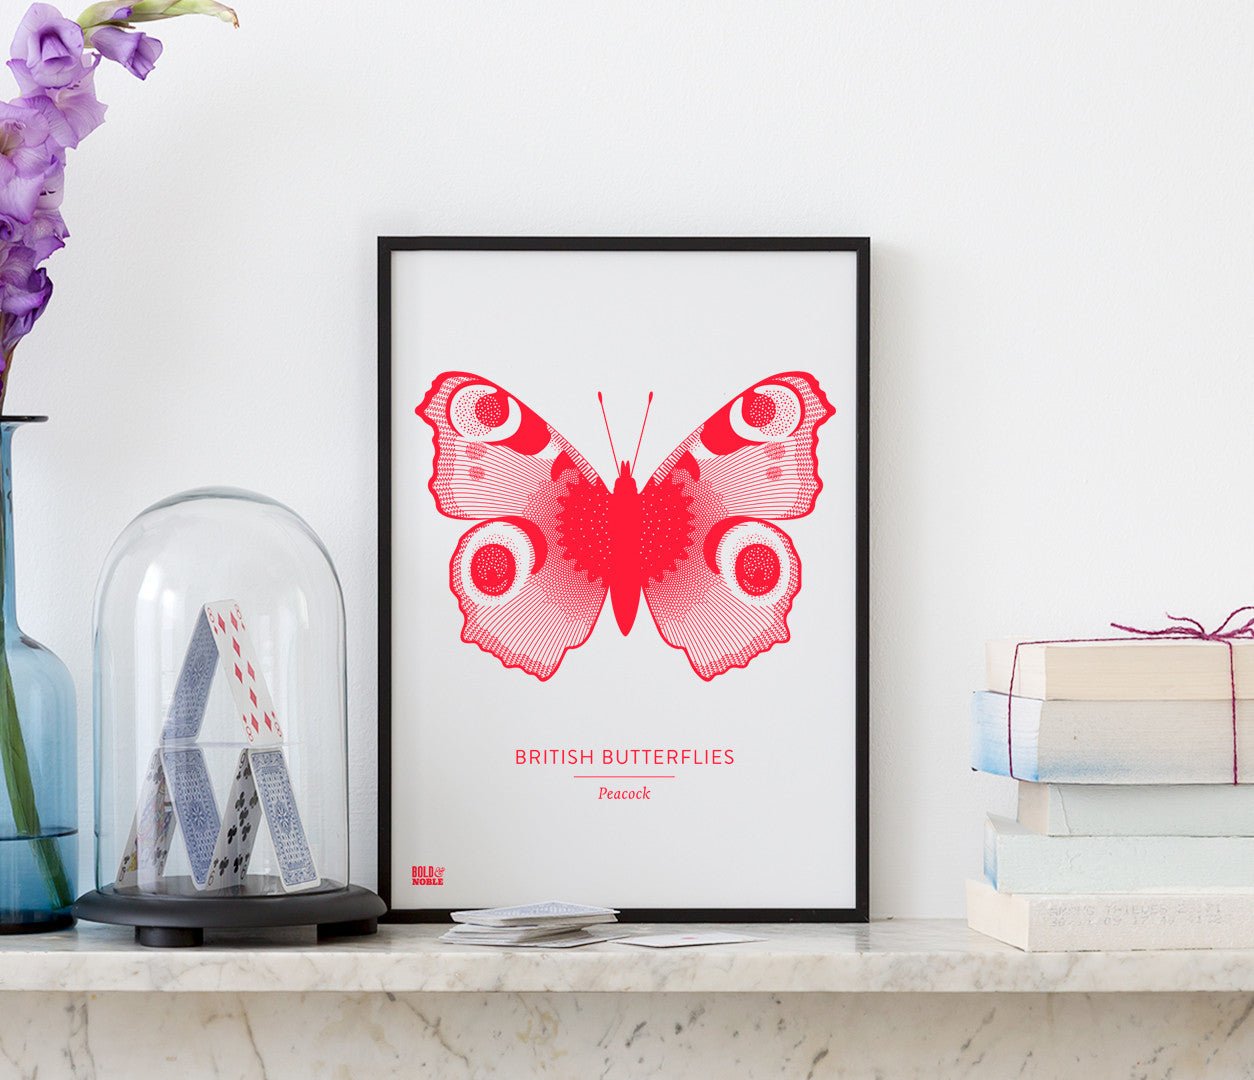 Set of Four 'British Butterflies' in Neon Red